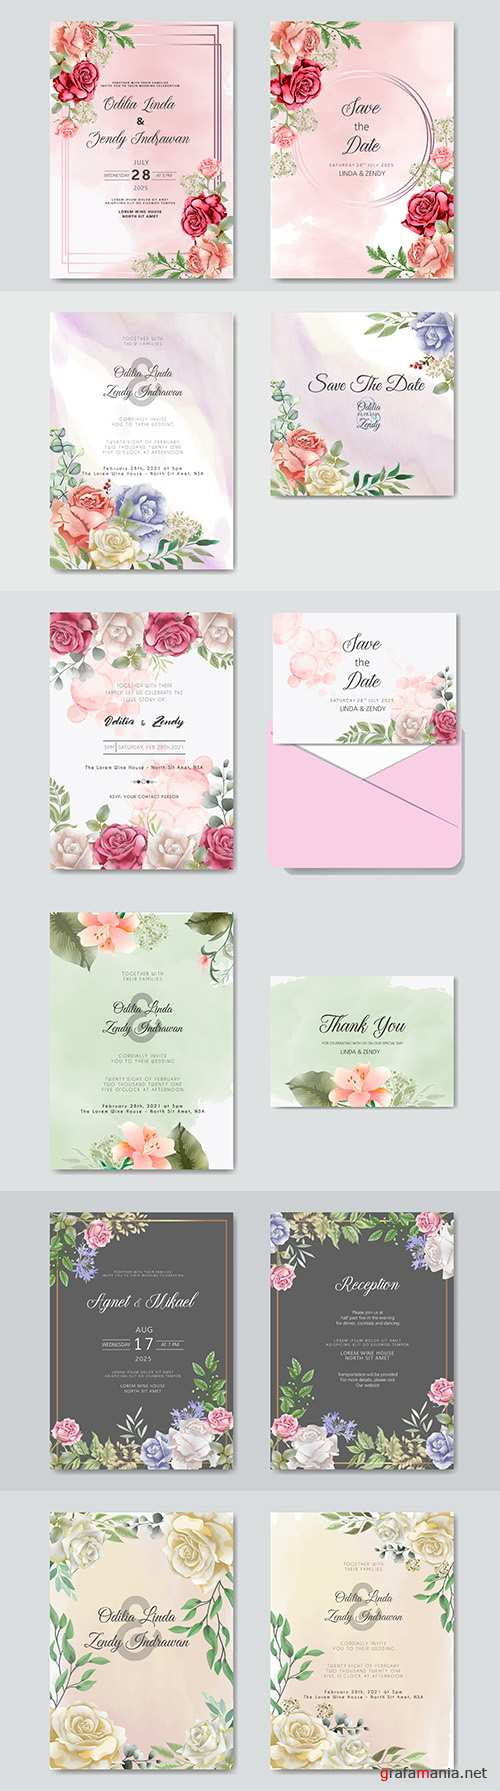 Wedding floral watercolor decorative invitations 14